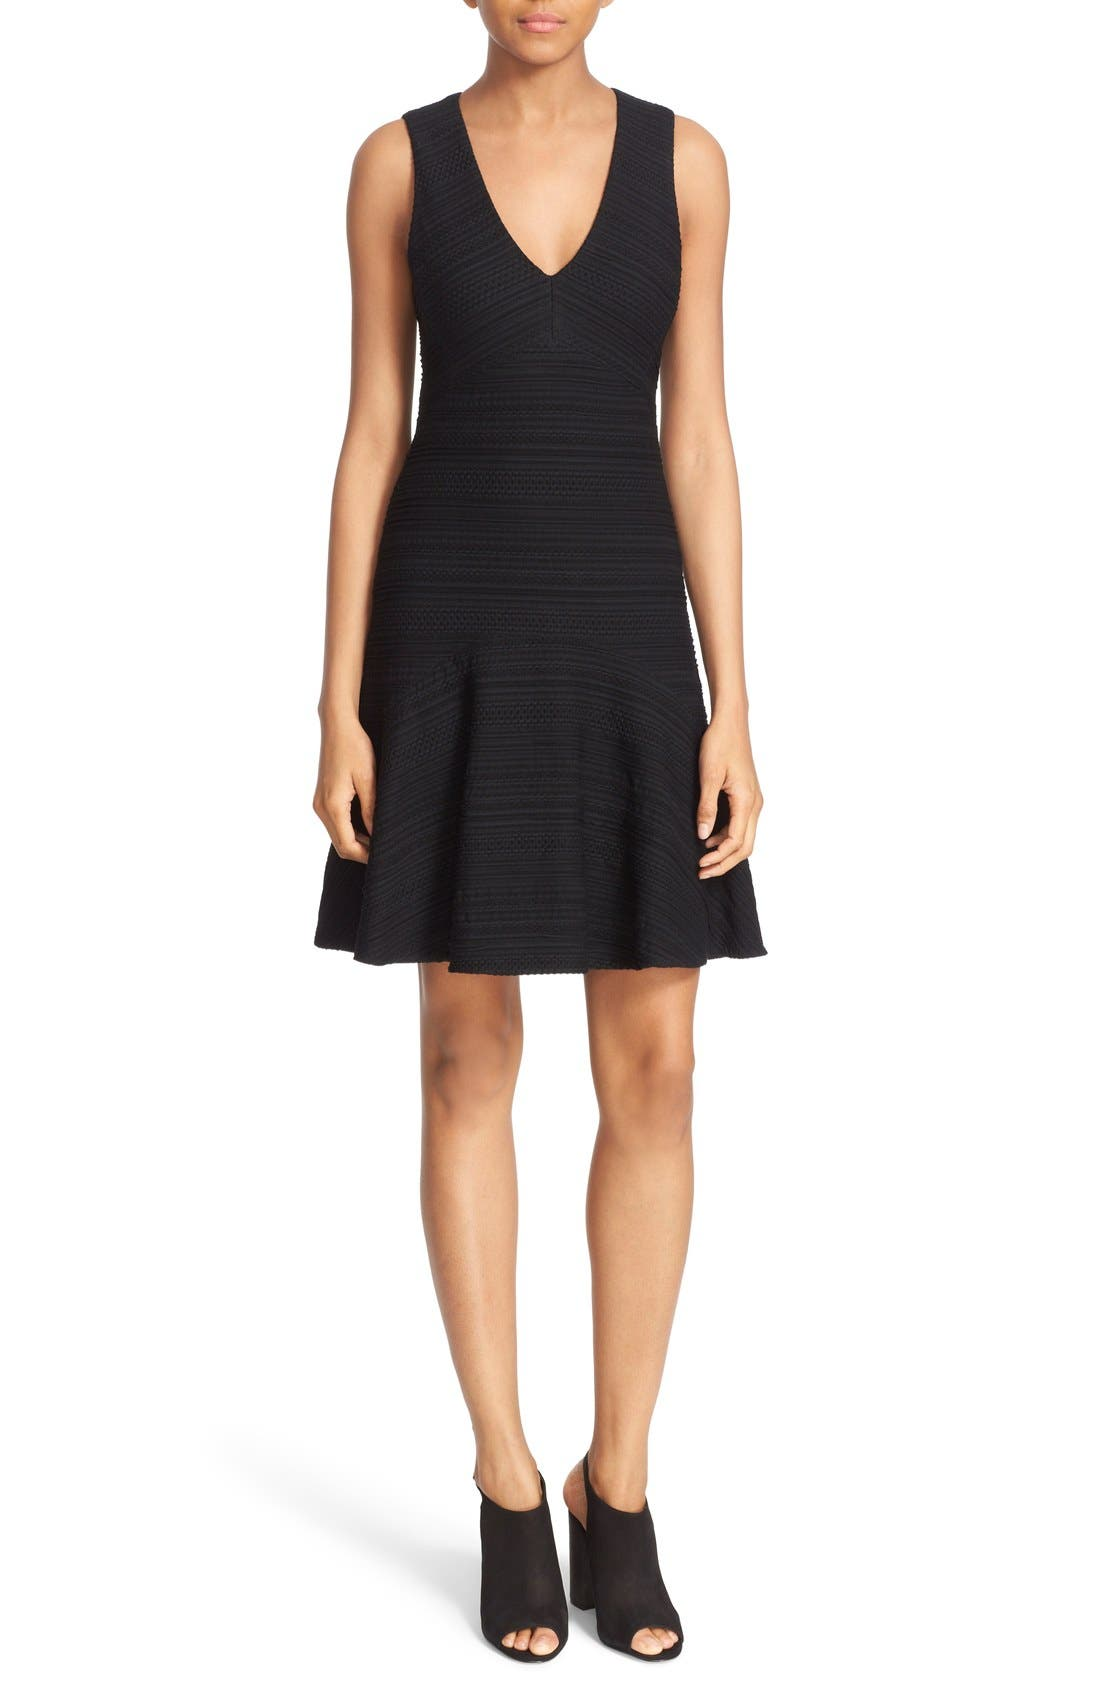 REBECCA TAYLOR Sleeveless V-Neck Texture Knit Fit & Flare Dress, Main, color, 001